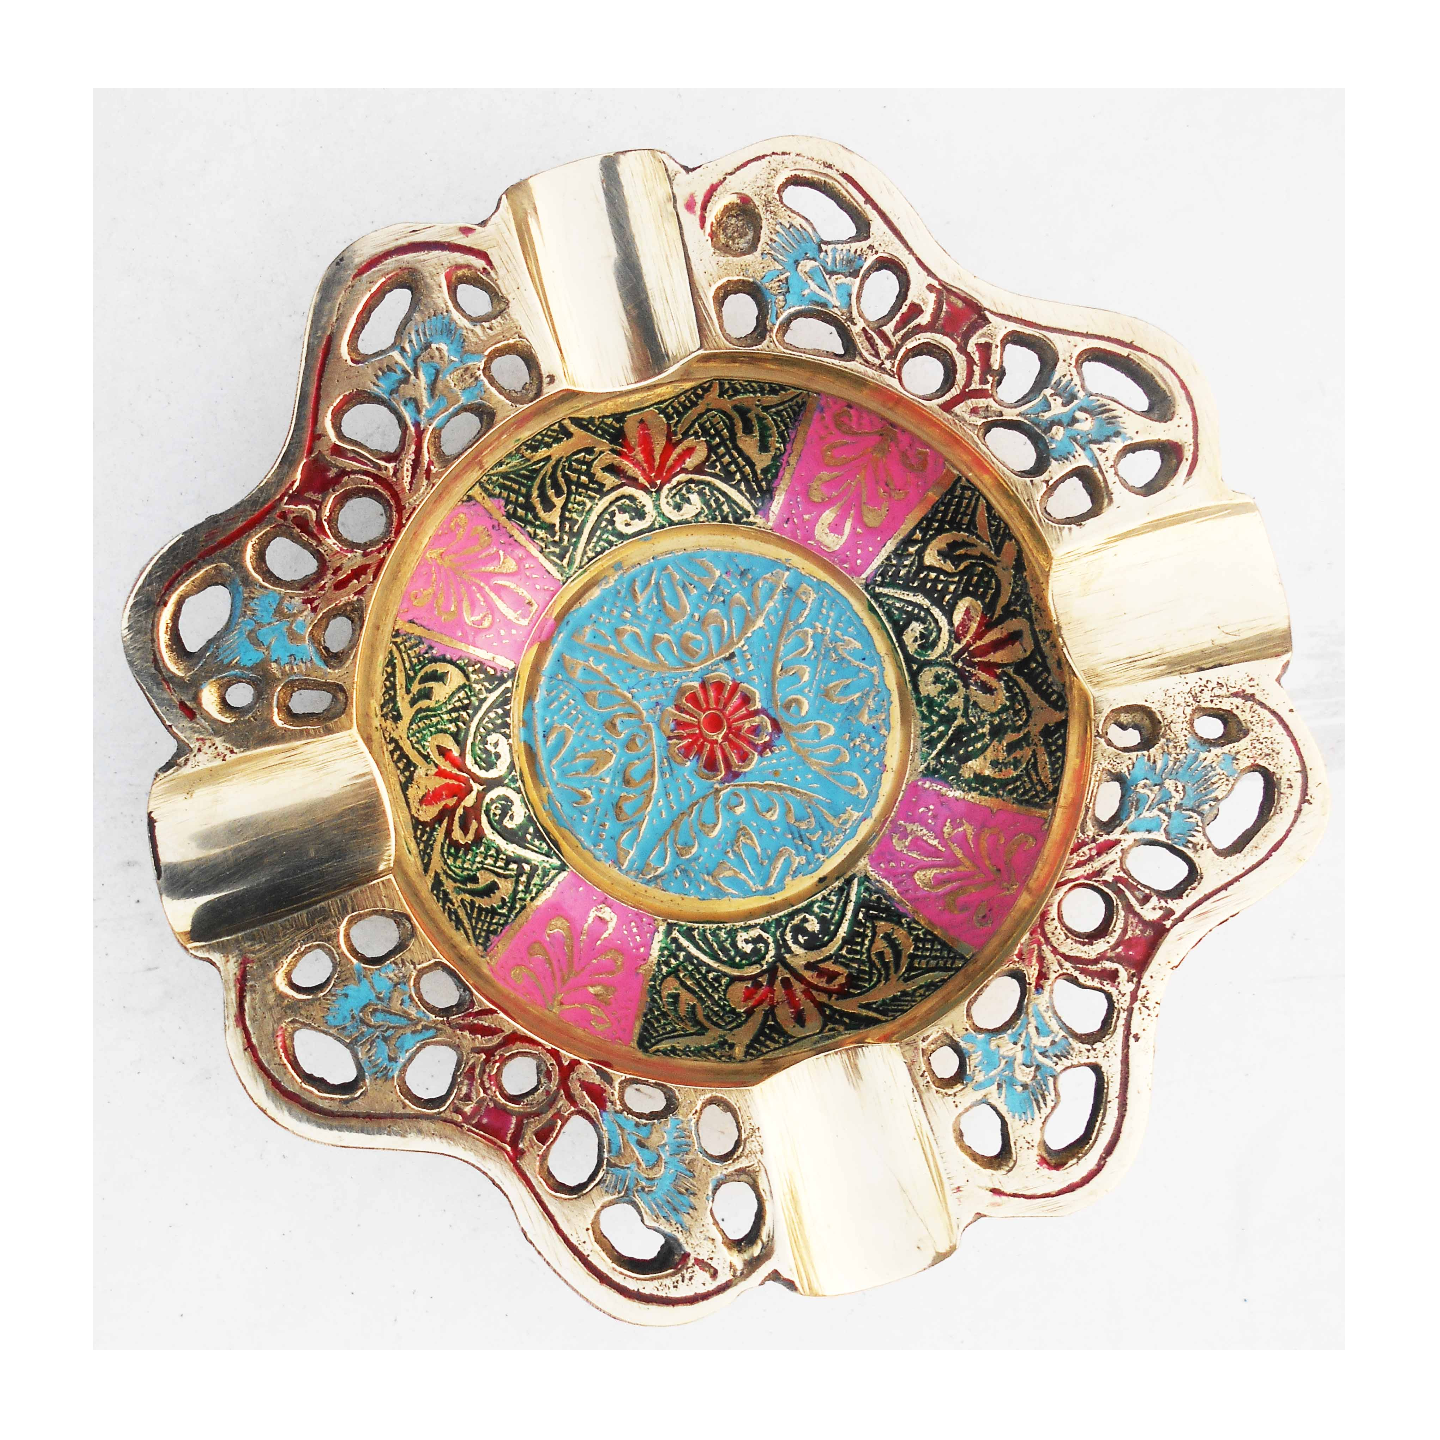 Brass Ash Tray With Multicloured Finsih - 5.5 Inch Z382 A